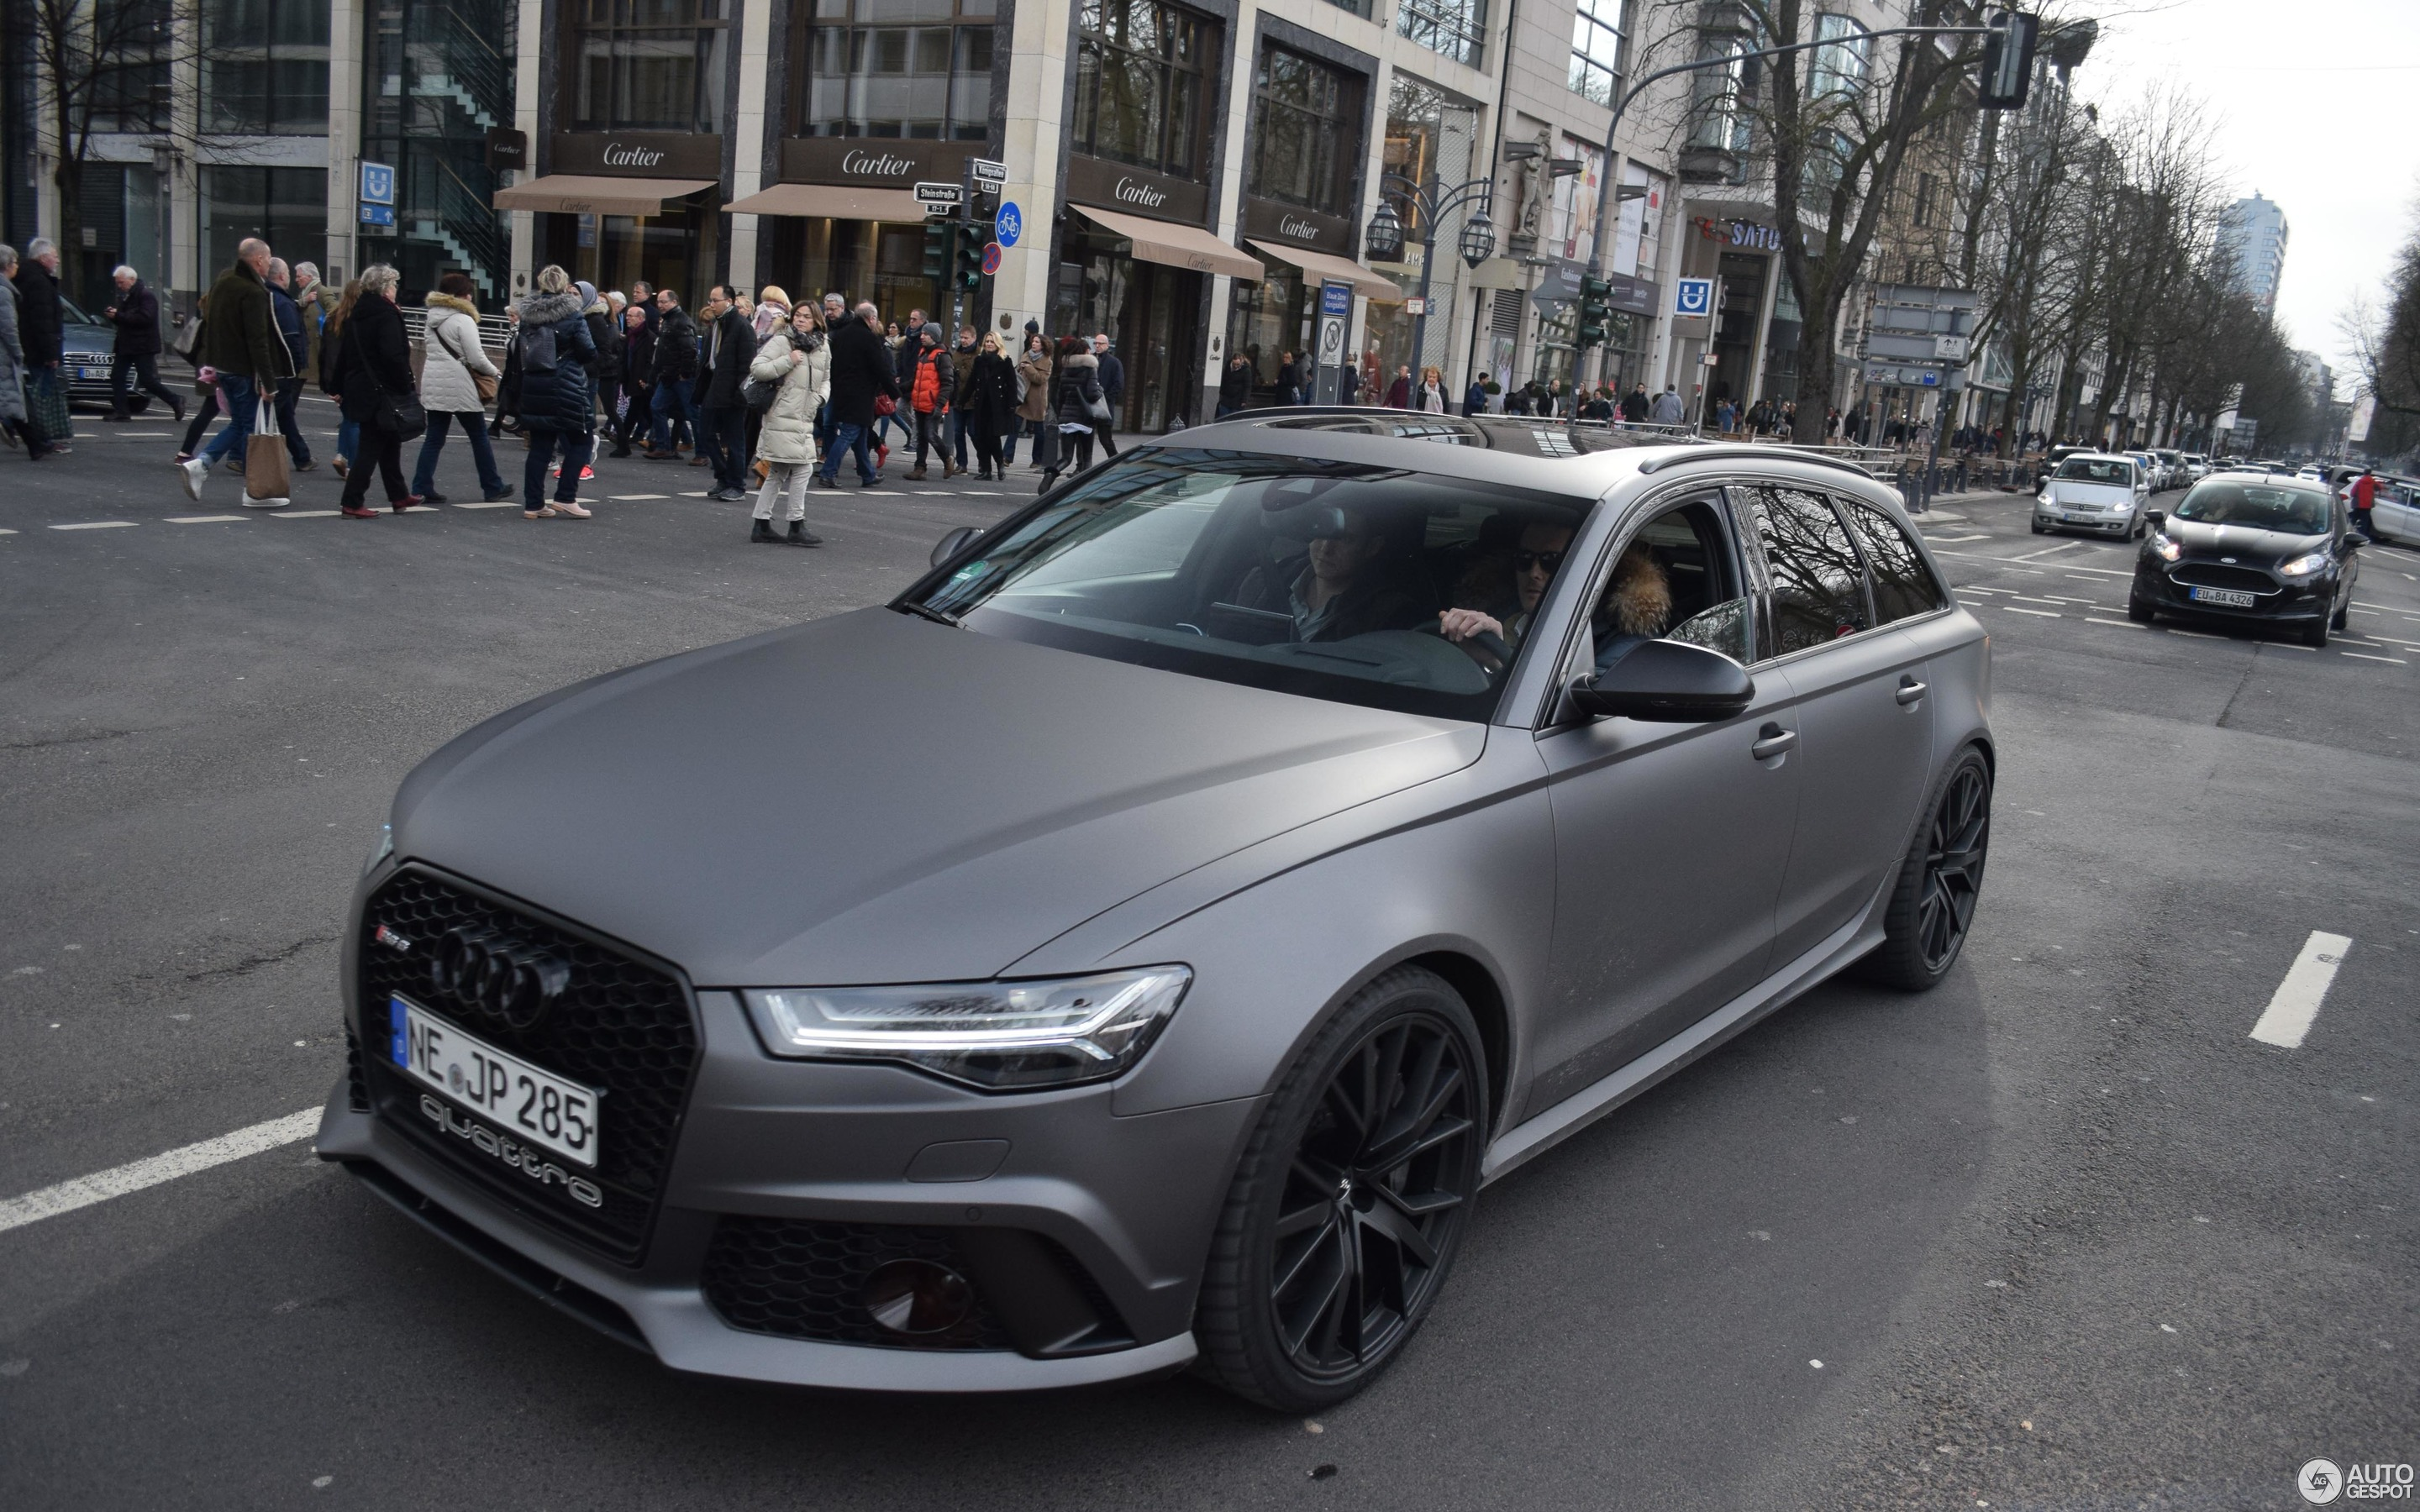 audi rs6 avant c7 2015 17 february 2018 autogespot. Black Bedroom Furniture Sets. Home Design Ideas